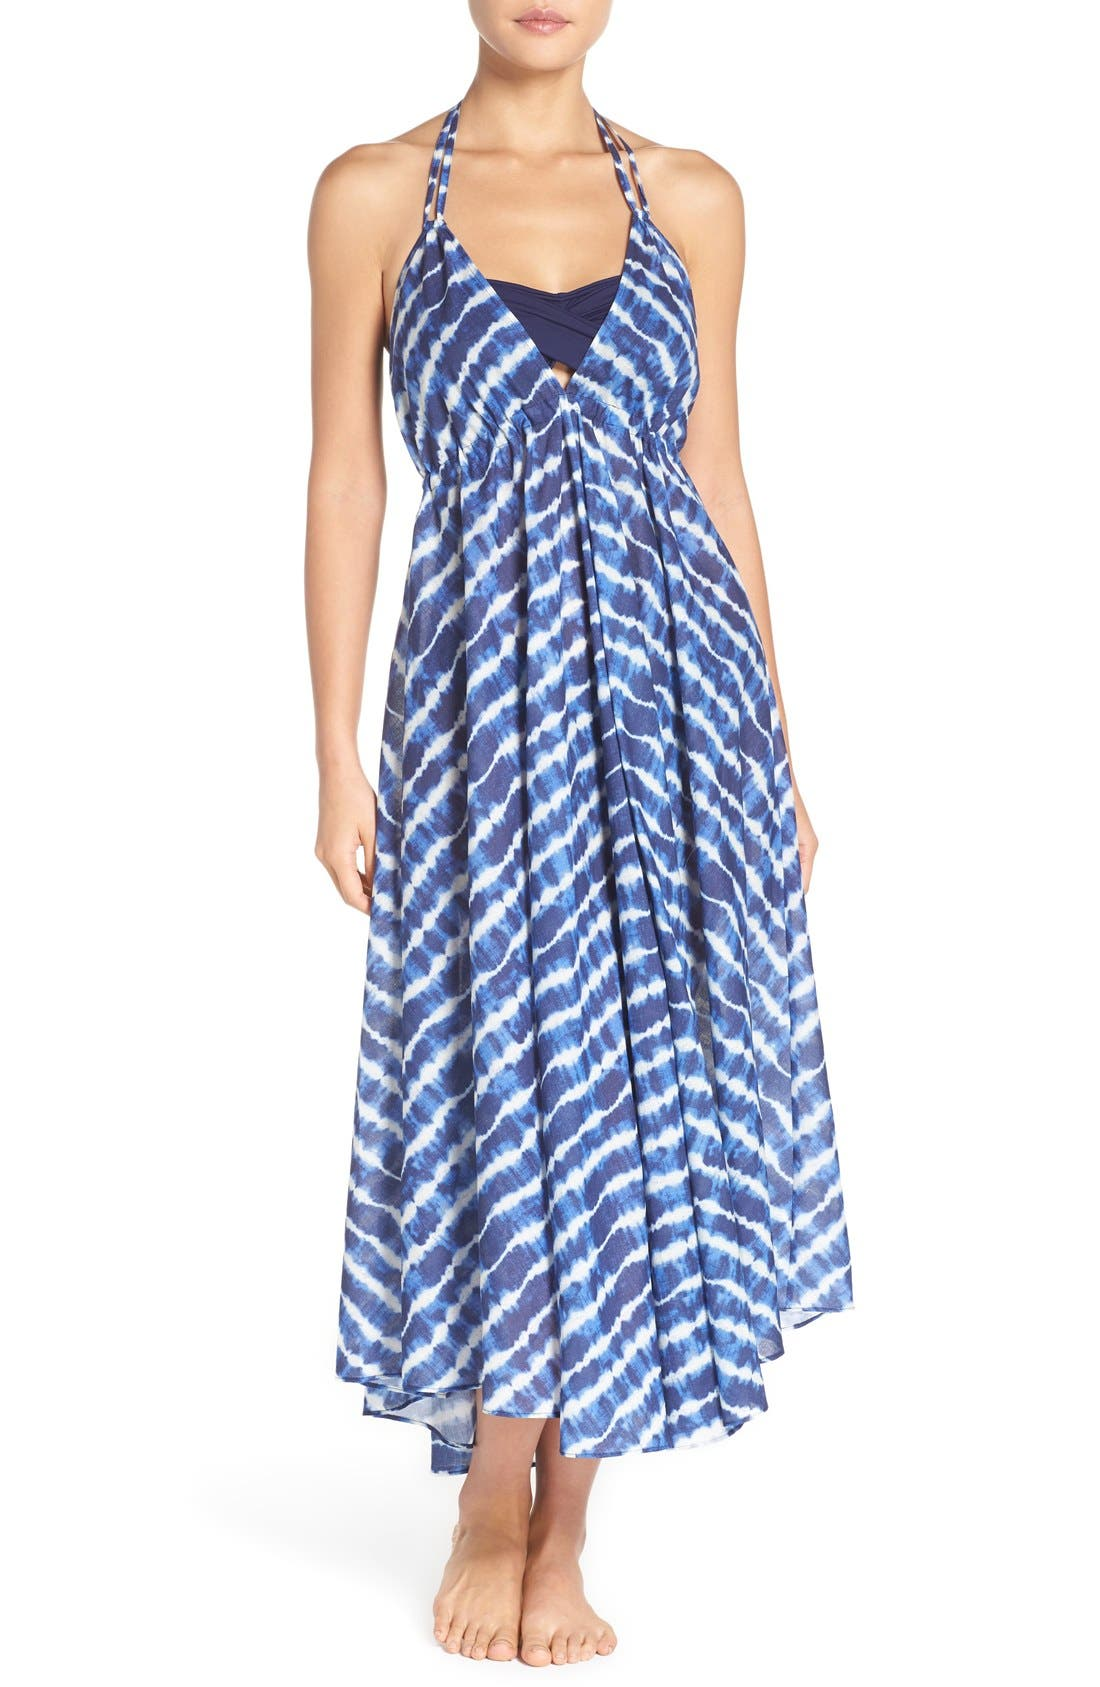 Tory Burch Tie Dye Cover-Up Dress